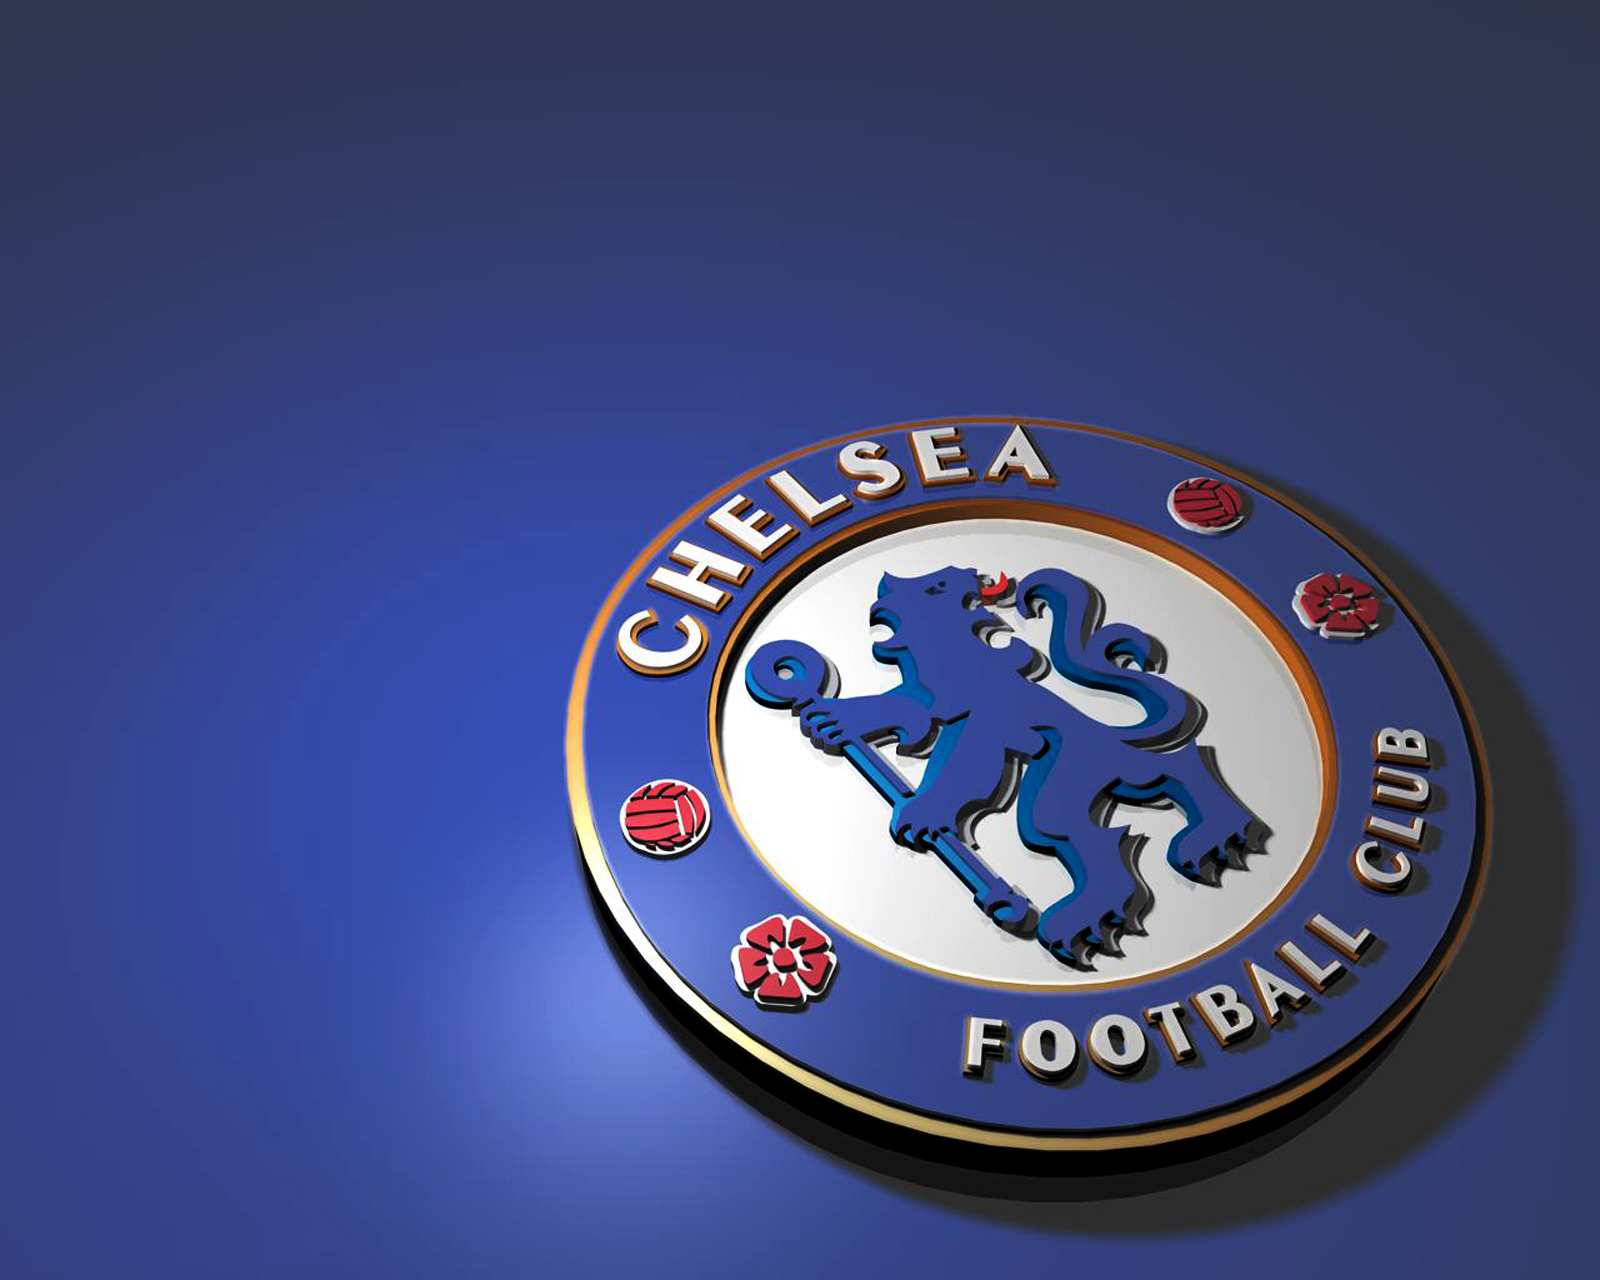 Chelsea Football Club Logo HD Wallpapers Download Wallpapers in 1600x1280